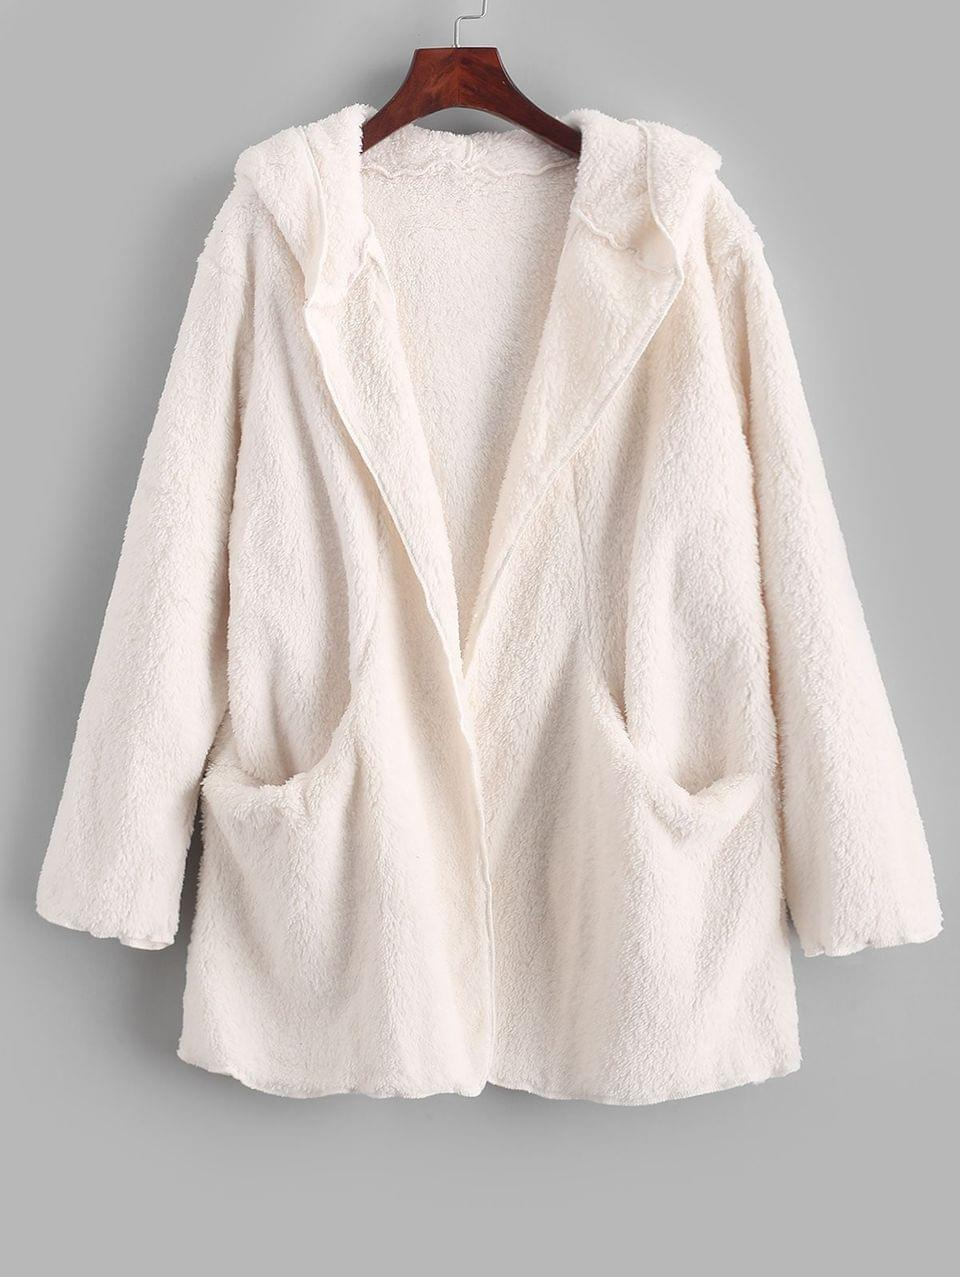 Women's Solid Color Pockets Hooded Teddy Coat - White S